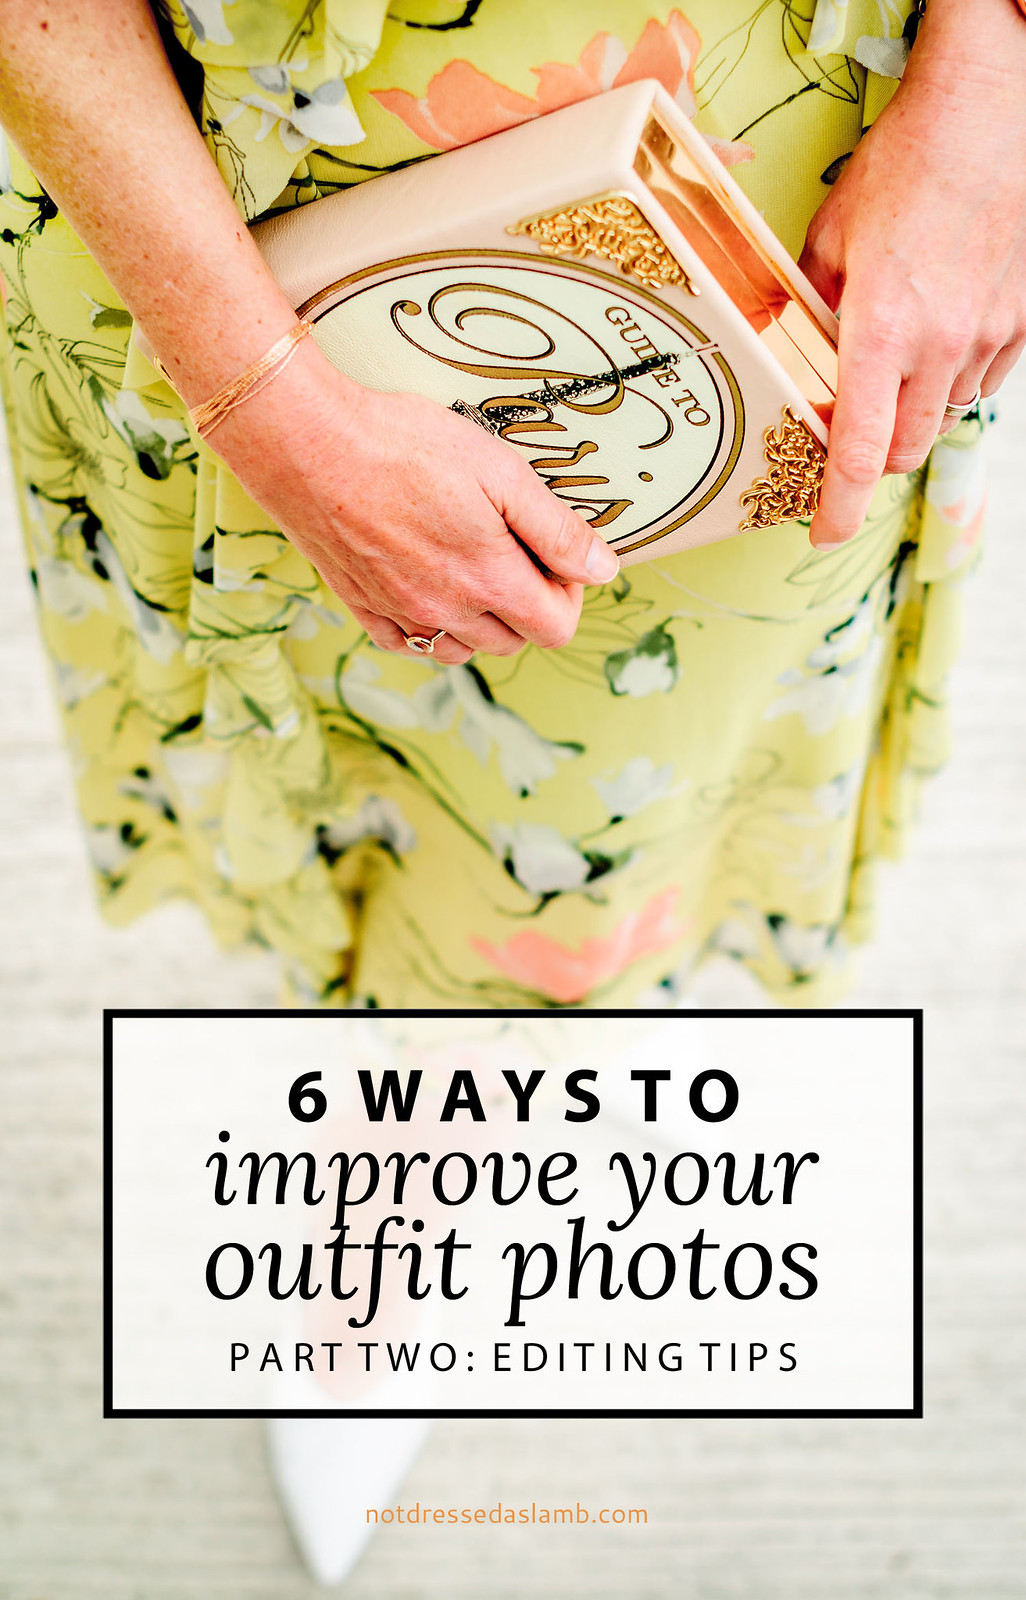 6 Easy Ways to Improve Your Blog Photos (Part 2: Editing Tips)